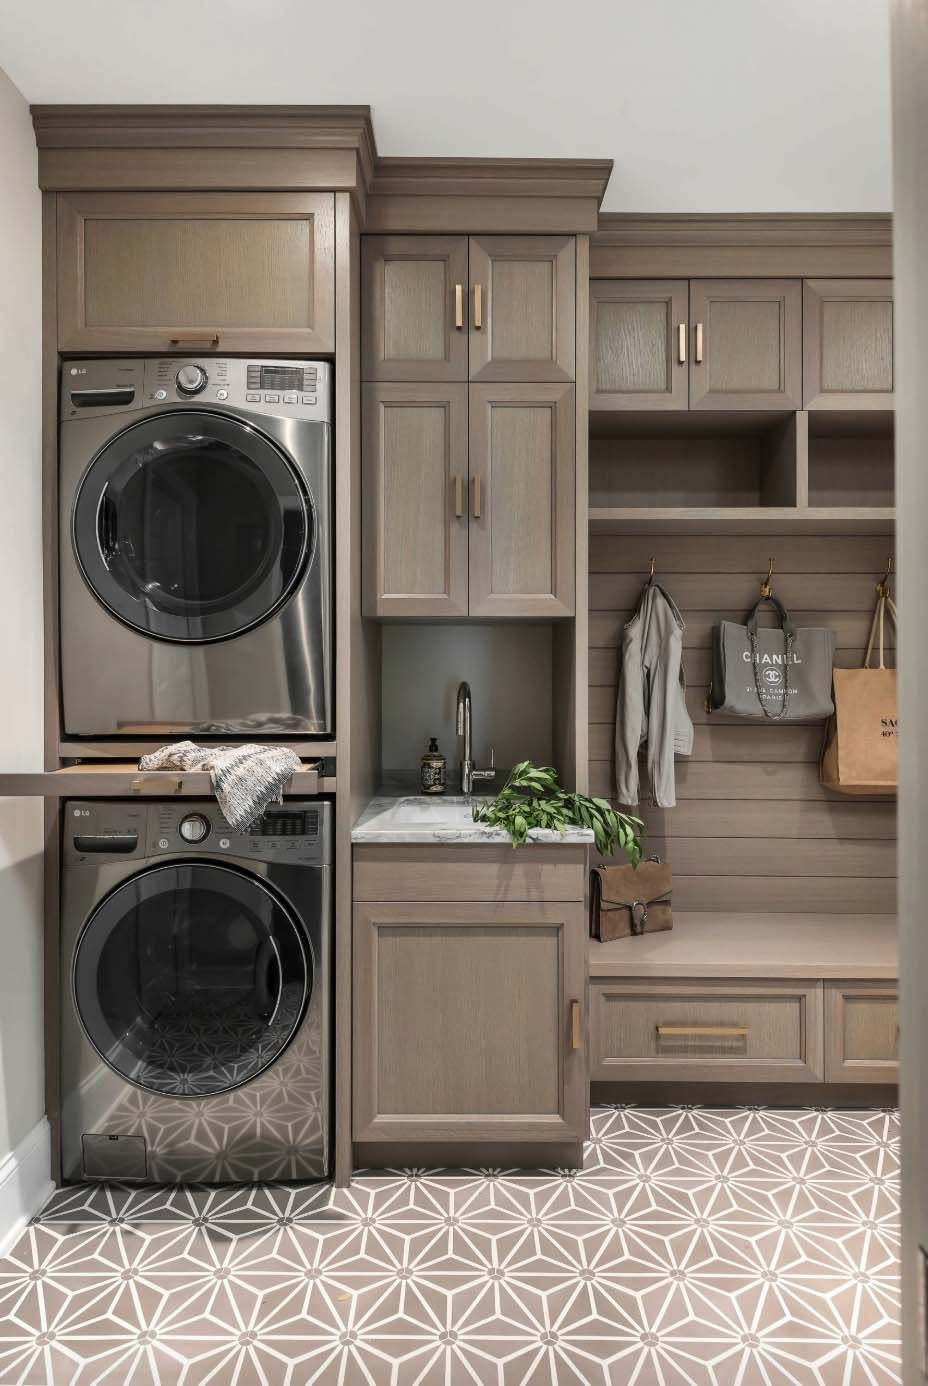 38 Functional And Stylish Laundry Room Design Ideas To Inspire images